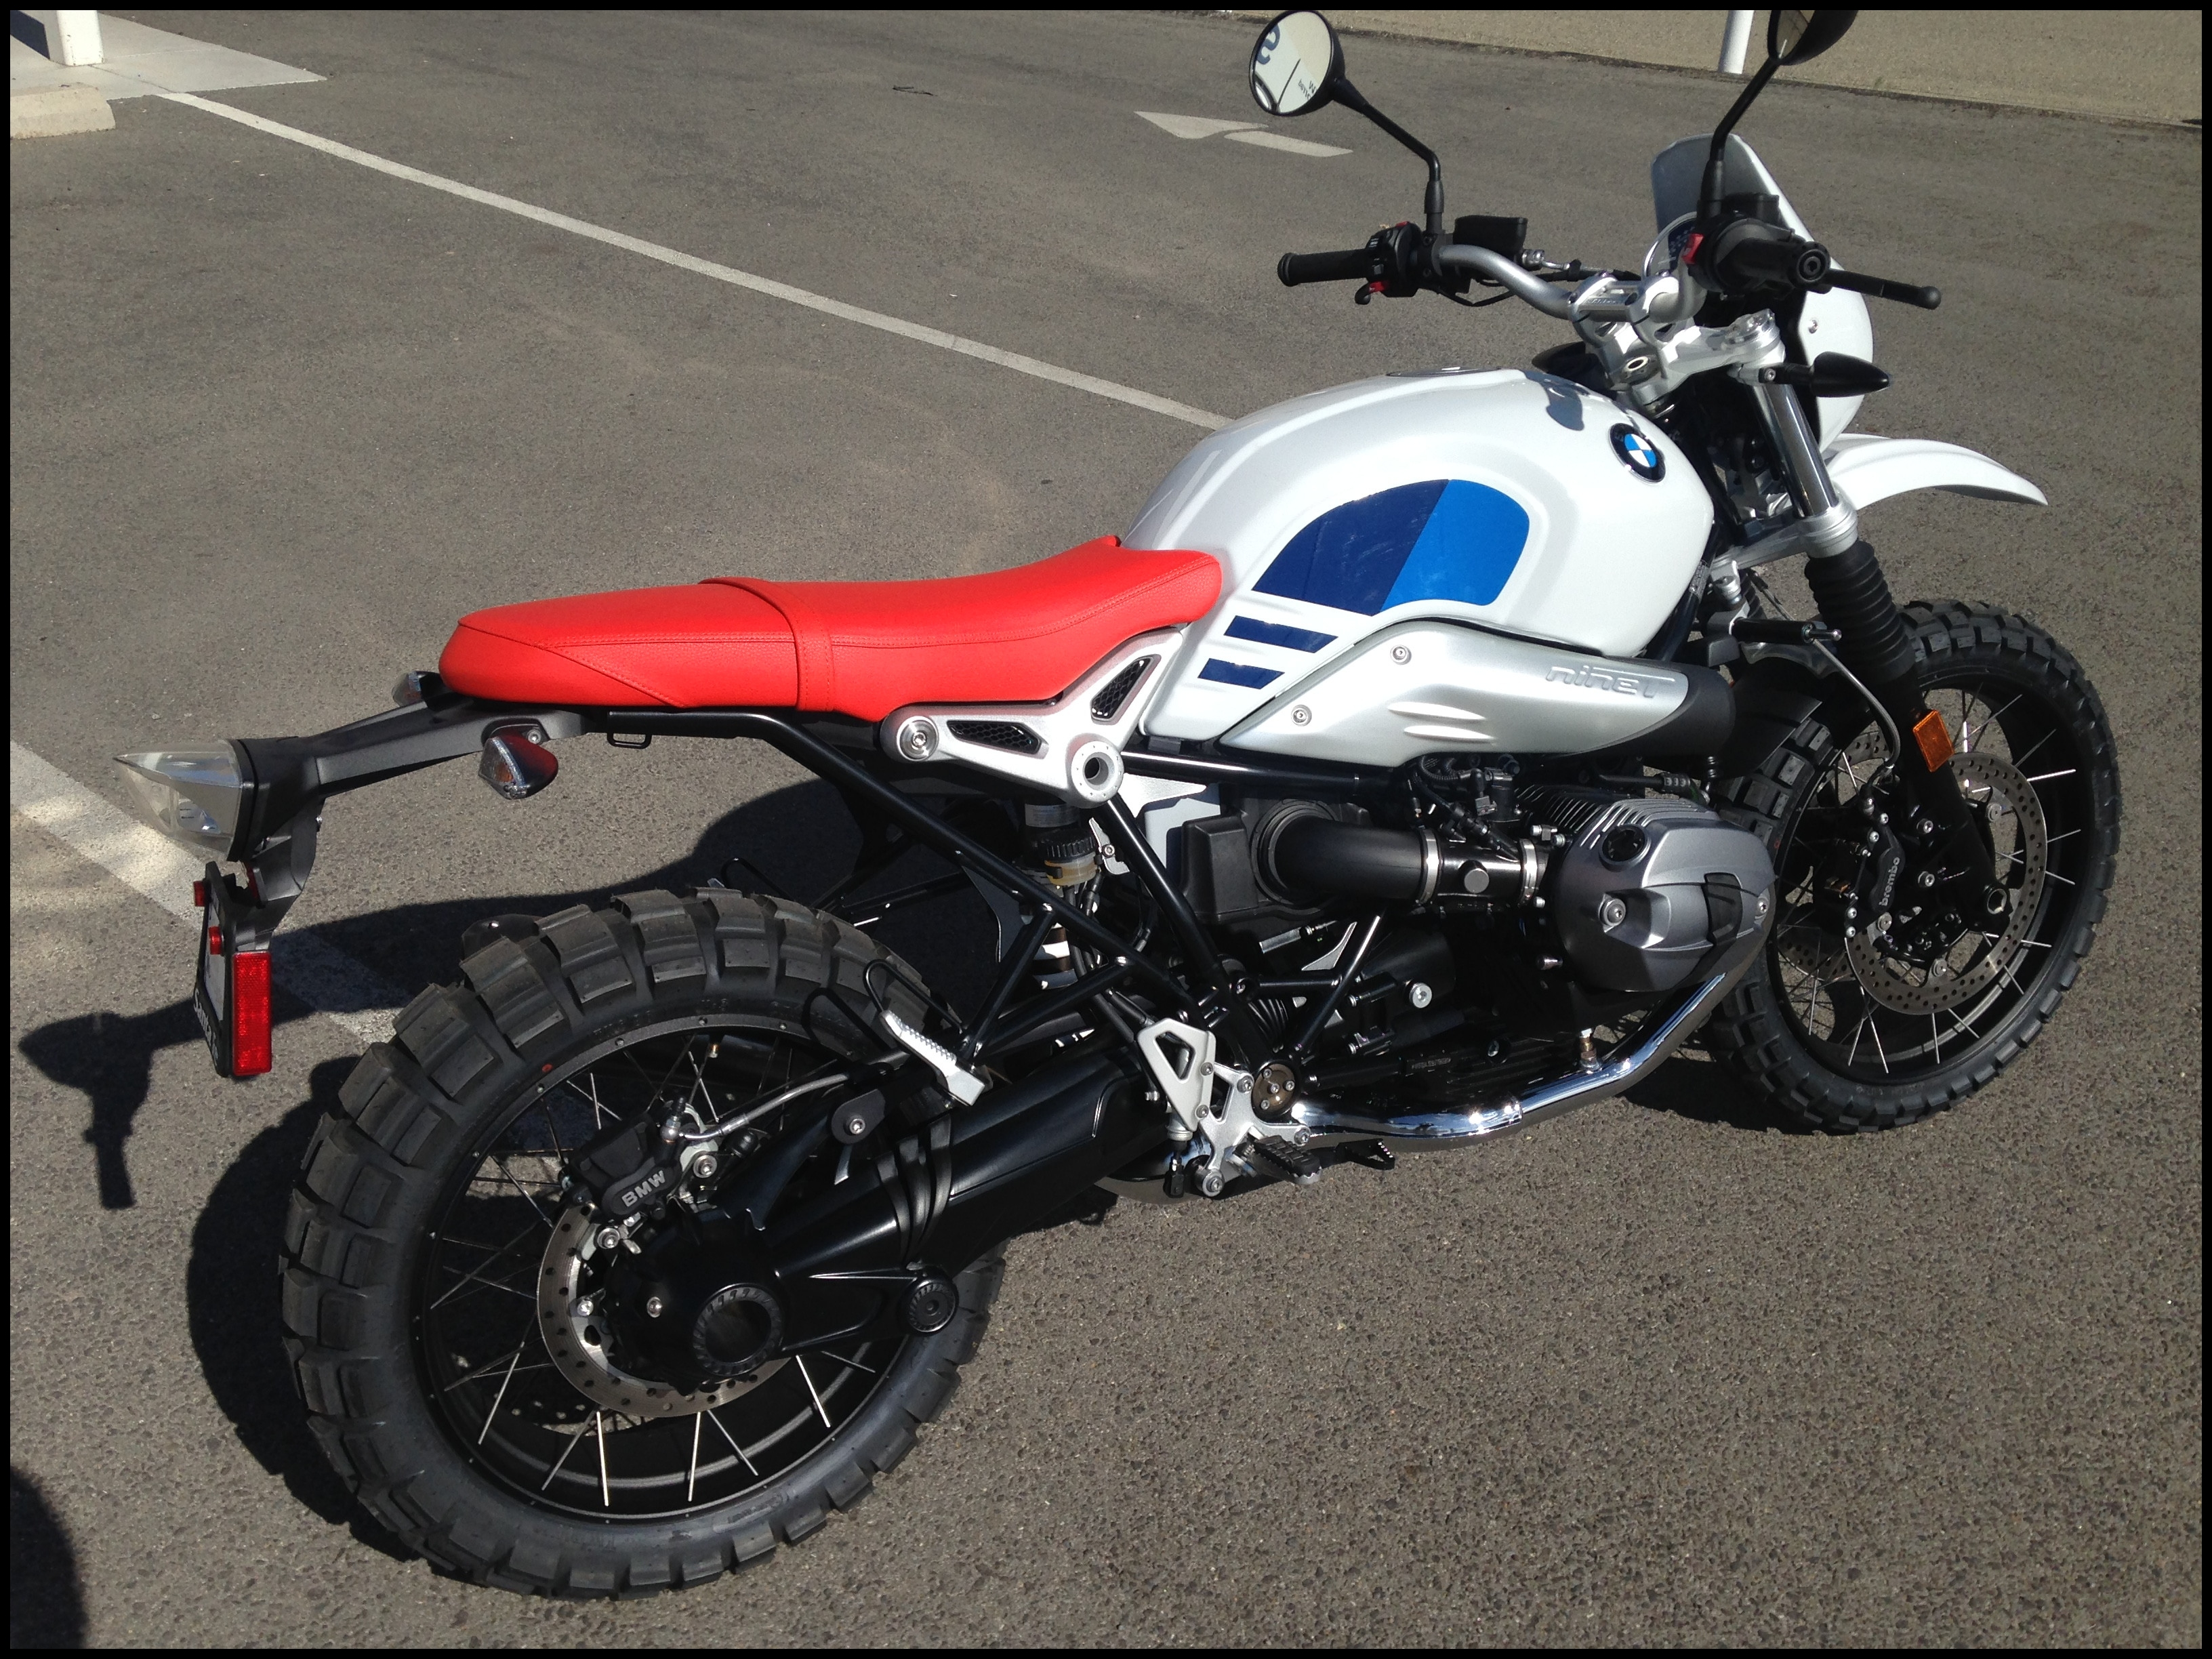 Bmw Motorcycle aftermarket Parts and Accessories Fresh New Bmw Motorcycles Santa Fe Bmw Motorcycles